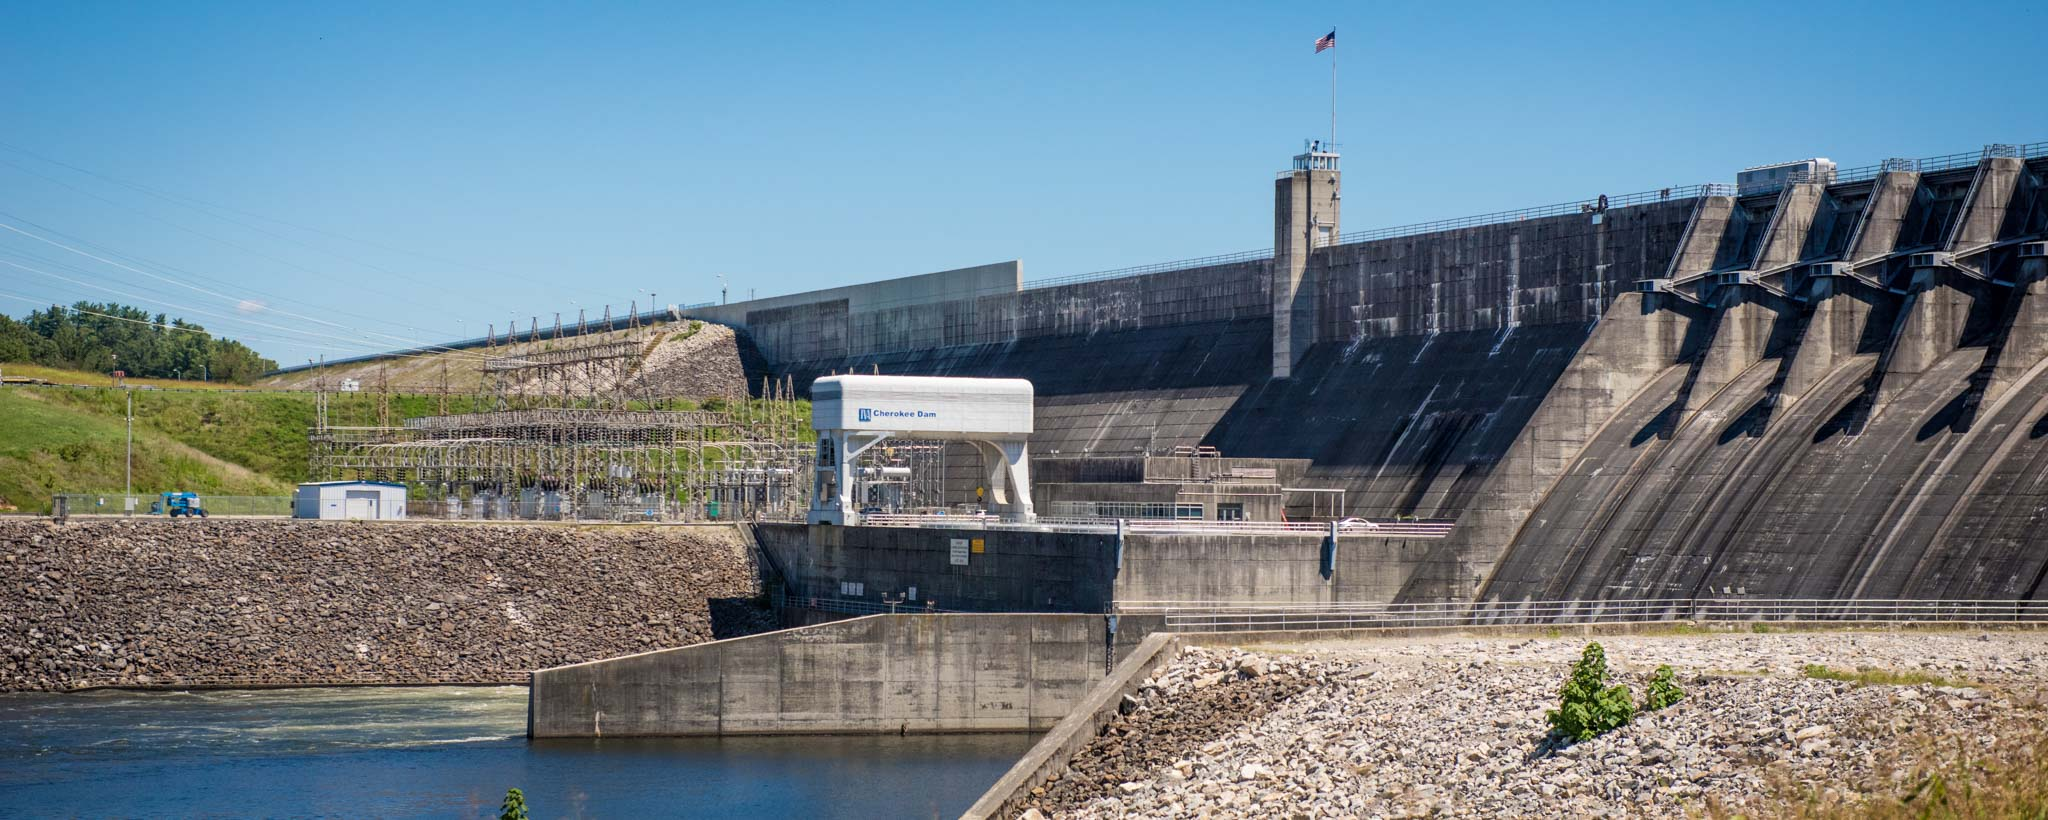 Dam Safety Is a Top Priority at TVA